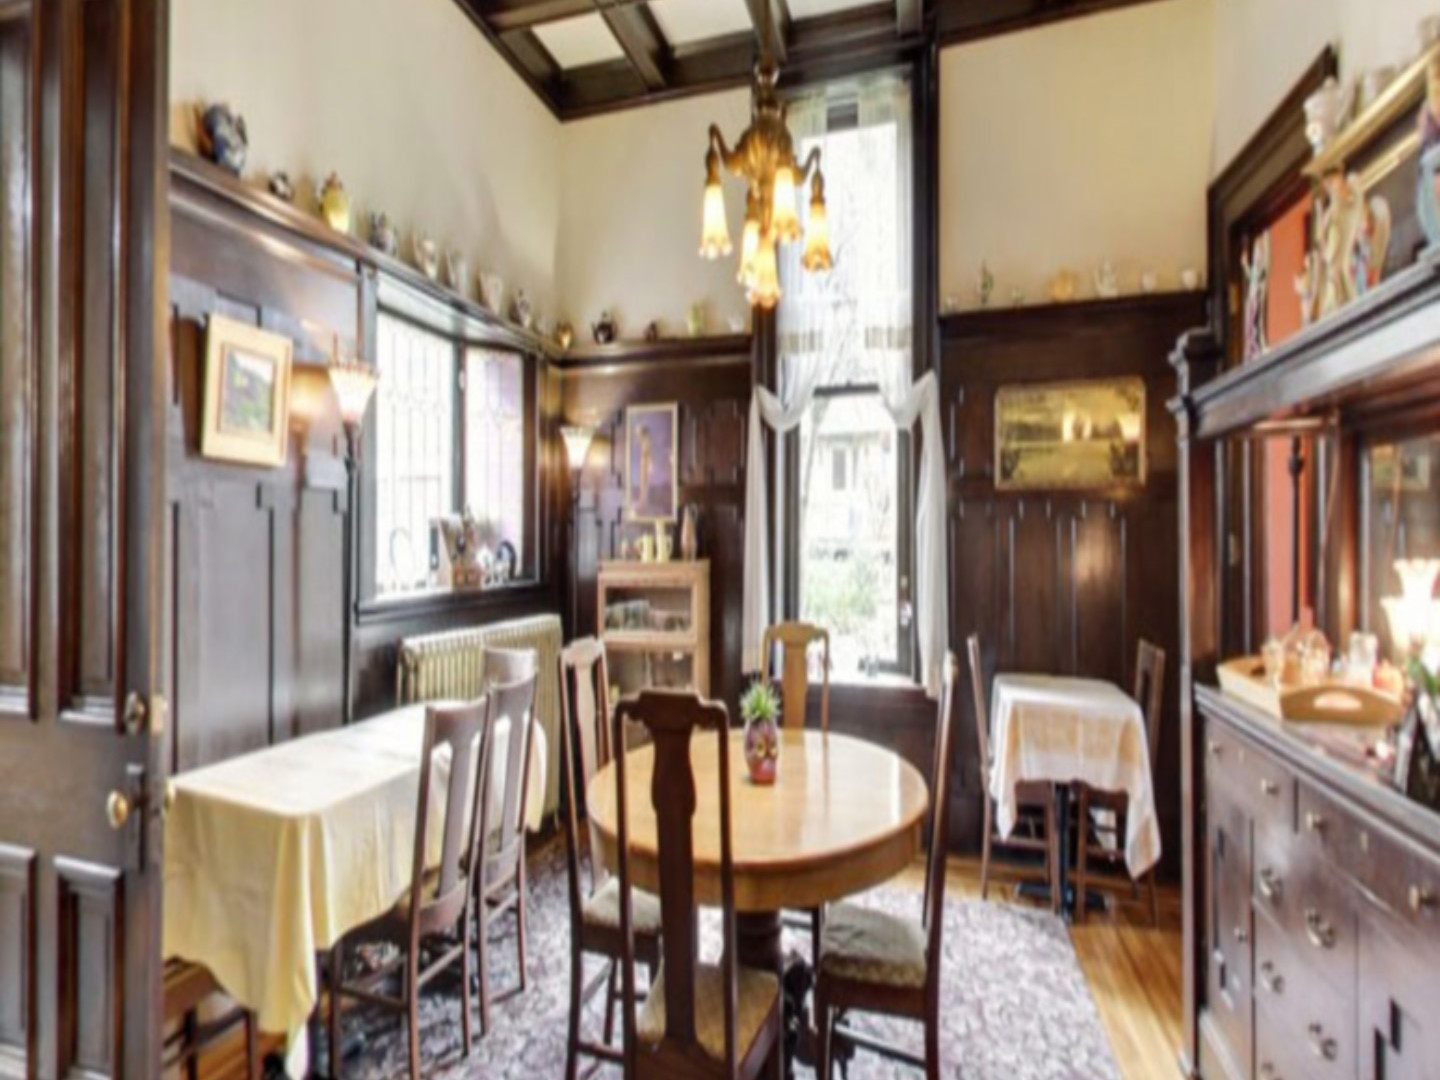 A kitchen with a dining room table at Moondance Inn.